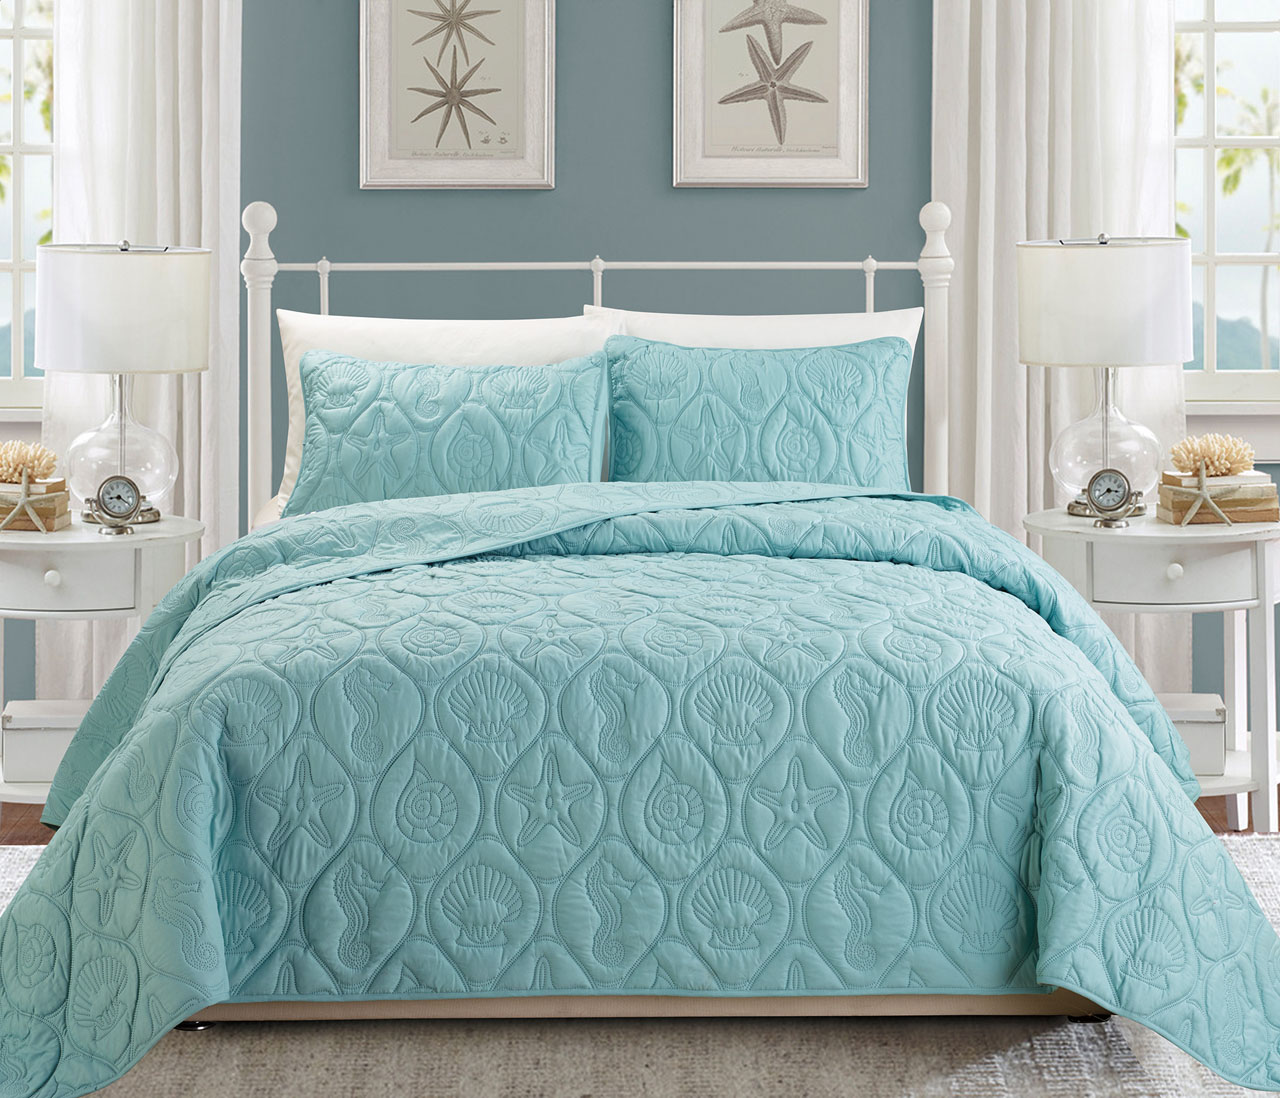 seblbehoquse beach set seaside house quilt blue